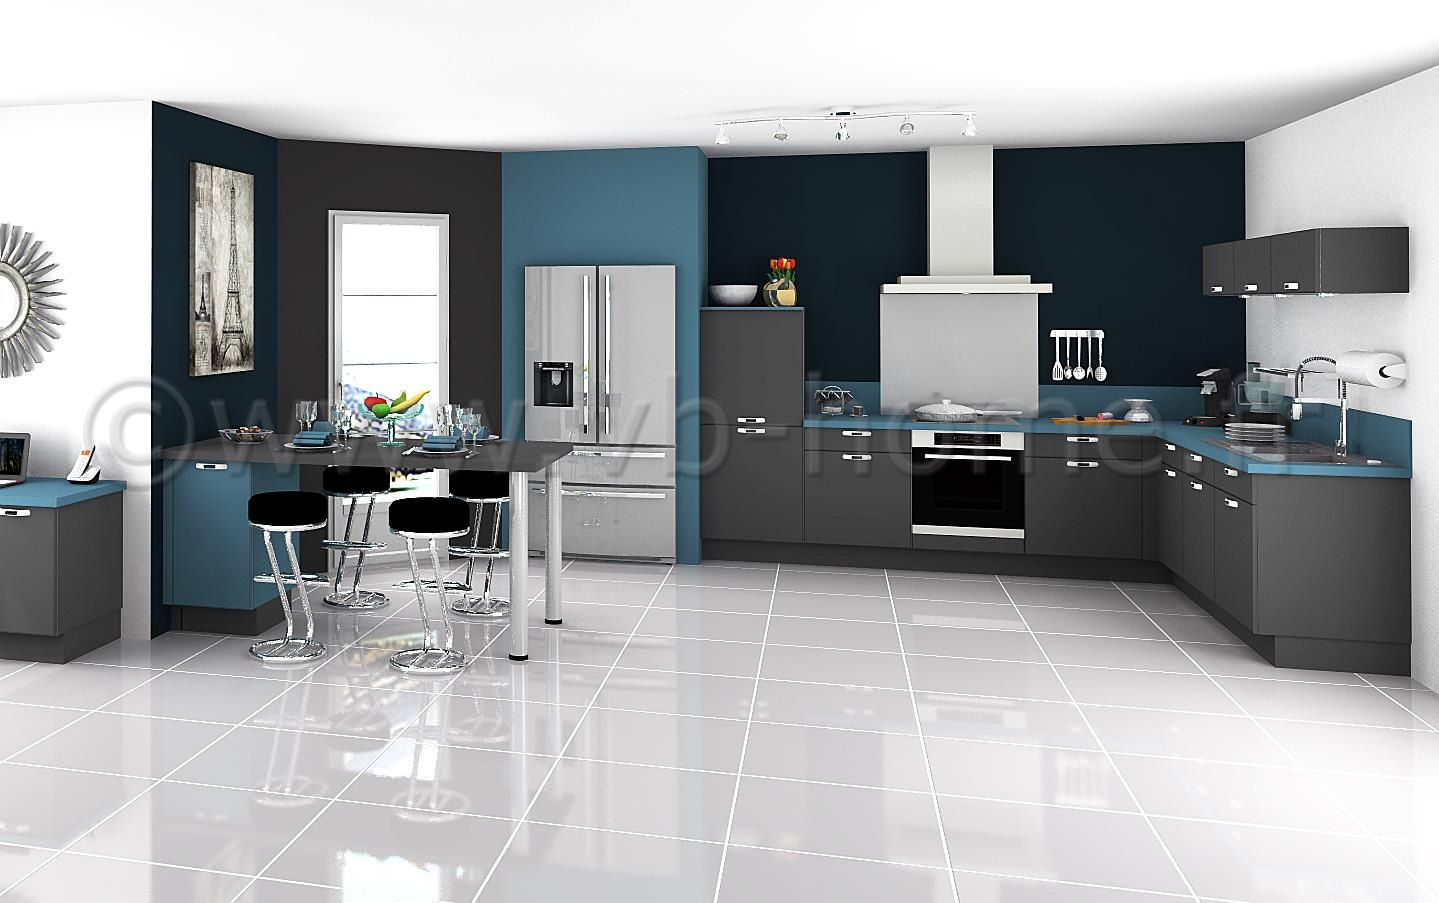 grande cuisine ouverte moderne avec fa ades gris bleu. Black Bedroom Furniture Sets. Home Design Ideas